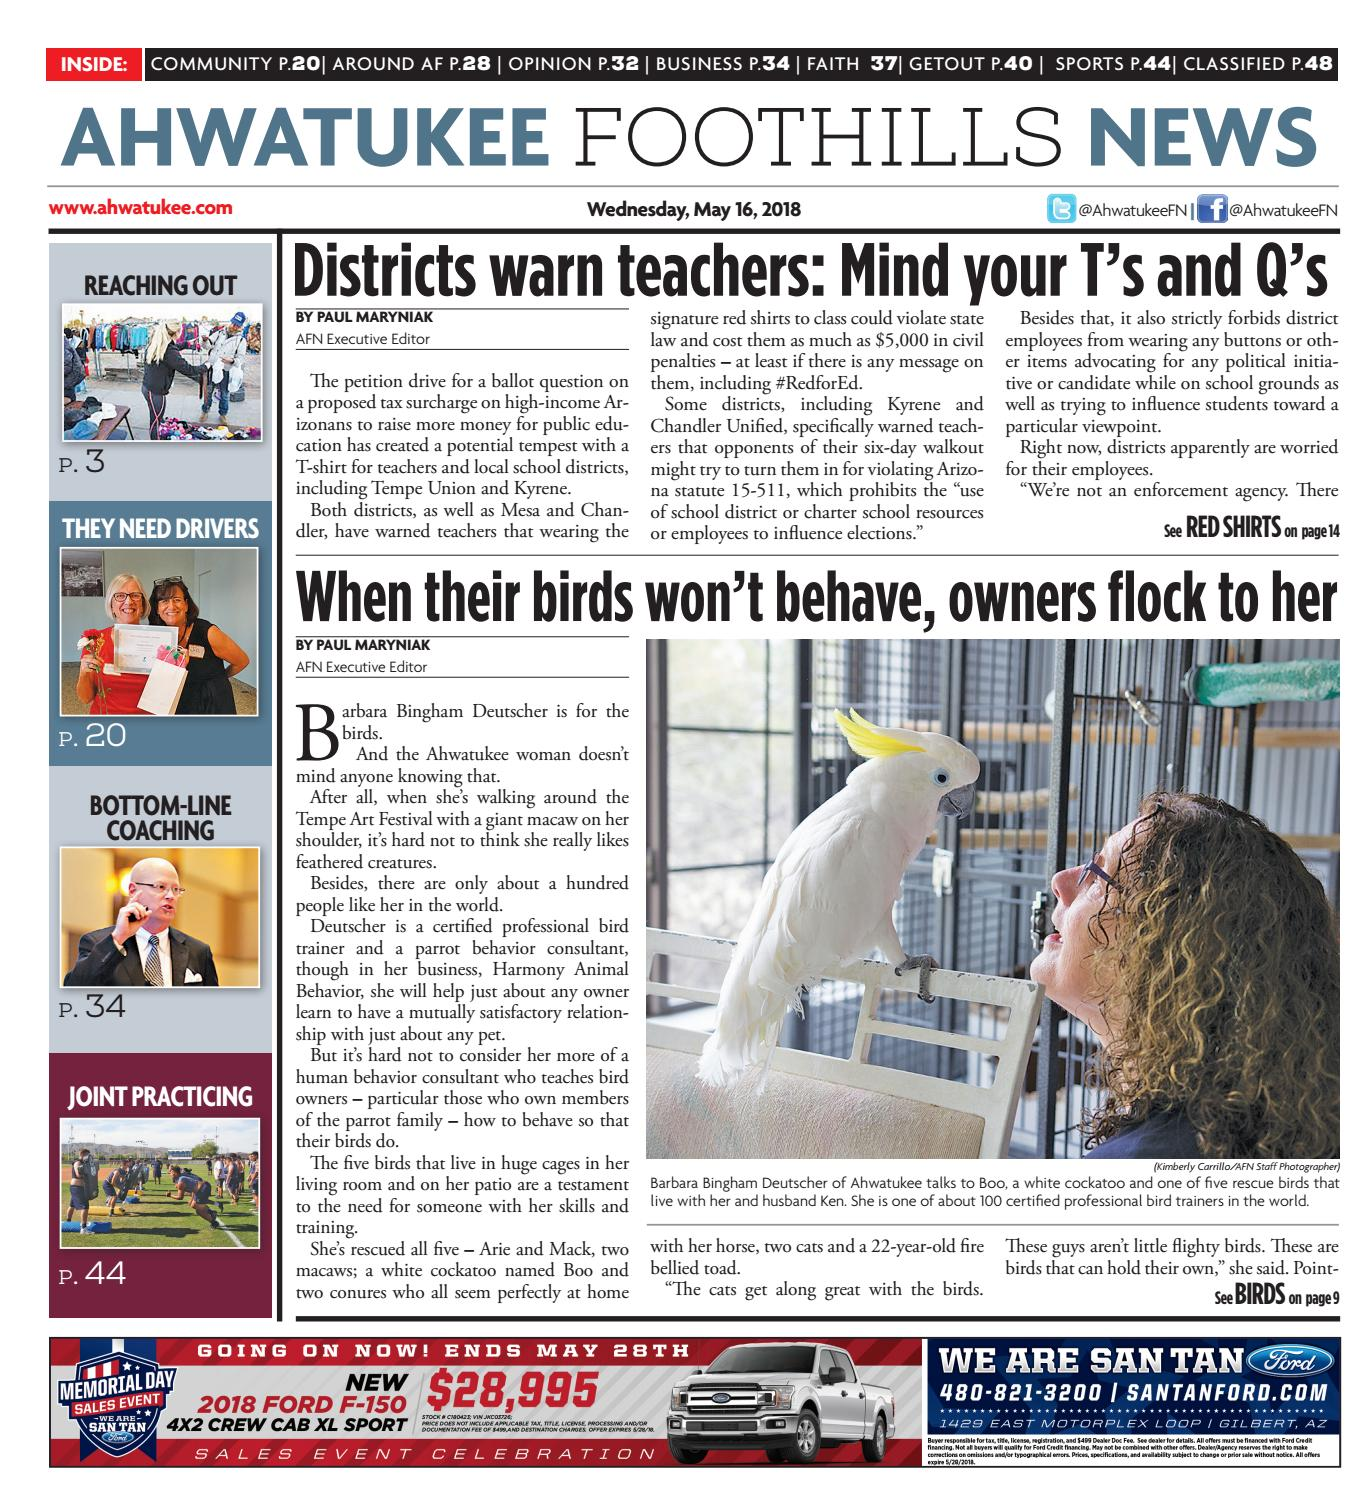 d415351db Ahwatukee Foothills News - May 16